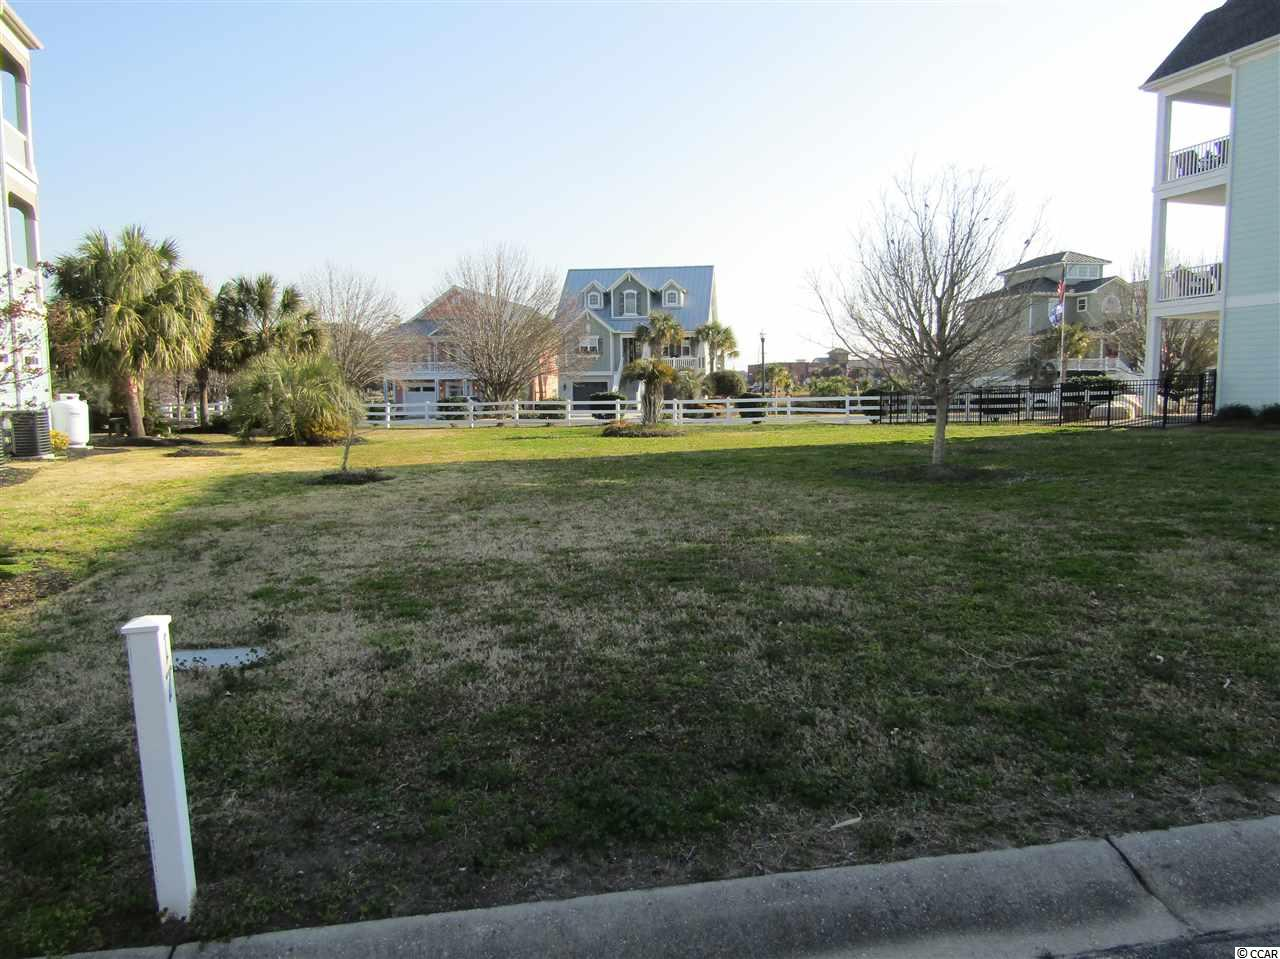 Build your dream home with marina and waterway views.  This community is located close to everything in North Myrtle Beach.  Drive your golf cart to the beach, restaurants and shopping.  Have your boat at the connecting marina.